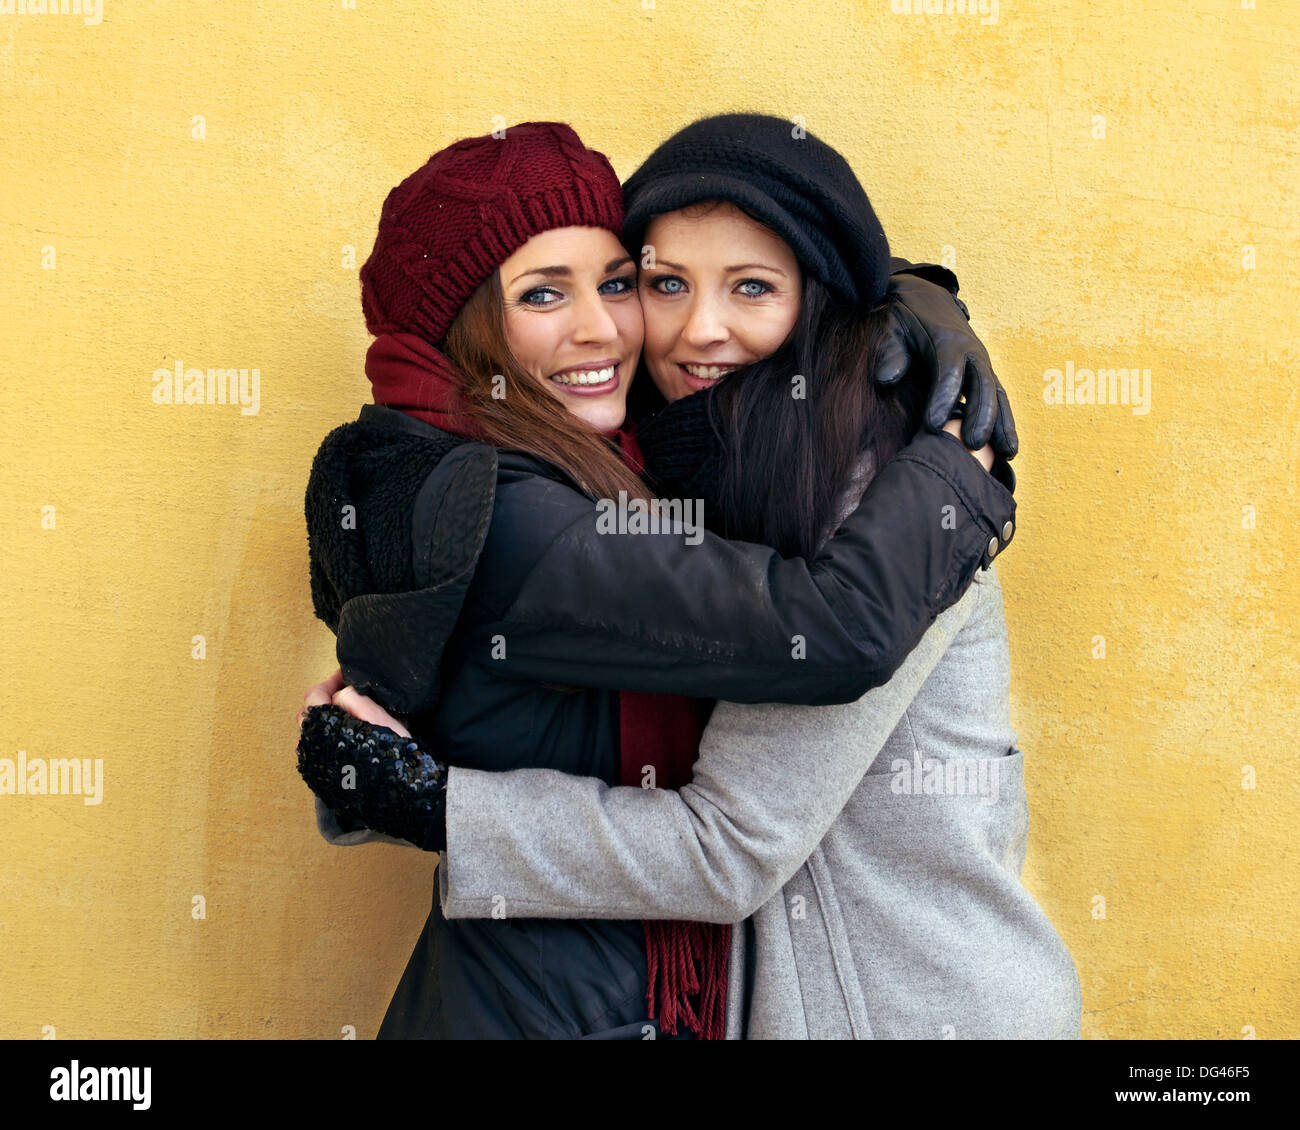 Two friends giving each other a warm hug - Stock Image